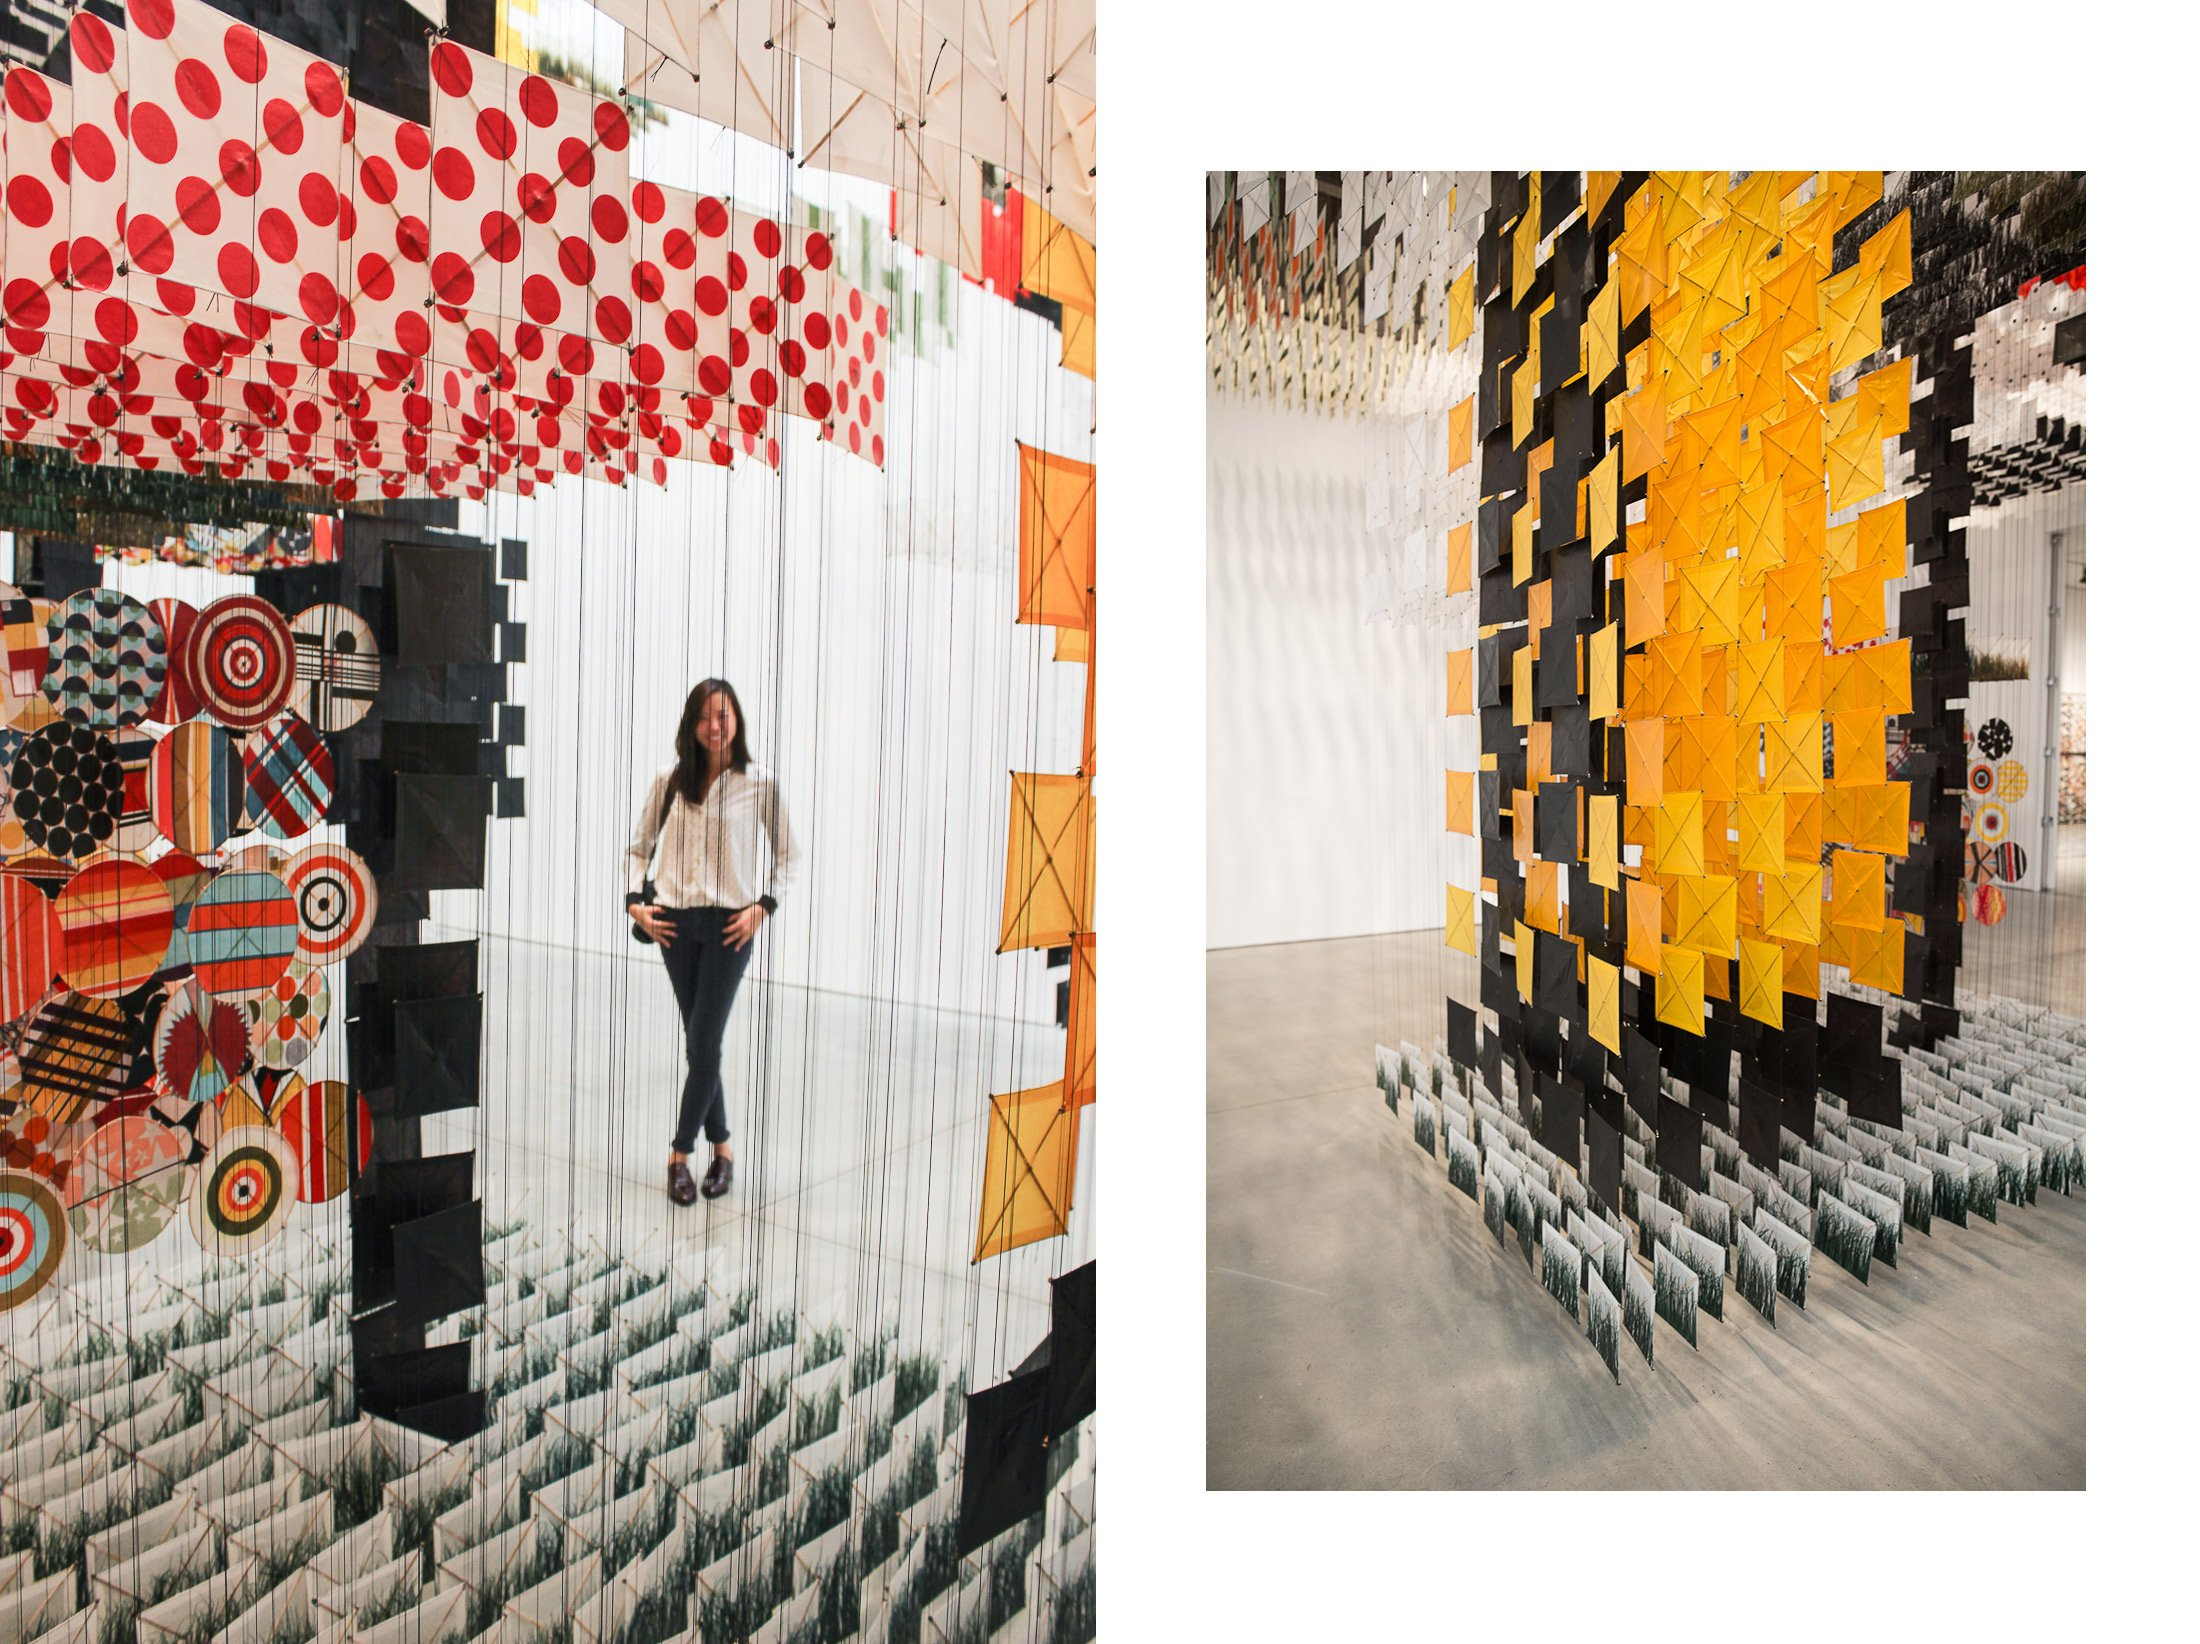 Jacob Hashimoto Sky Farm Fortress Mary Boone gallery Chelsea Galleries art artist kite installation shershegoes.com sher she goes